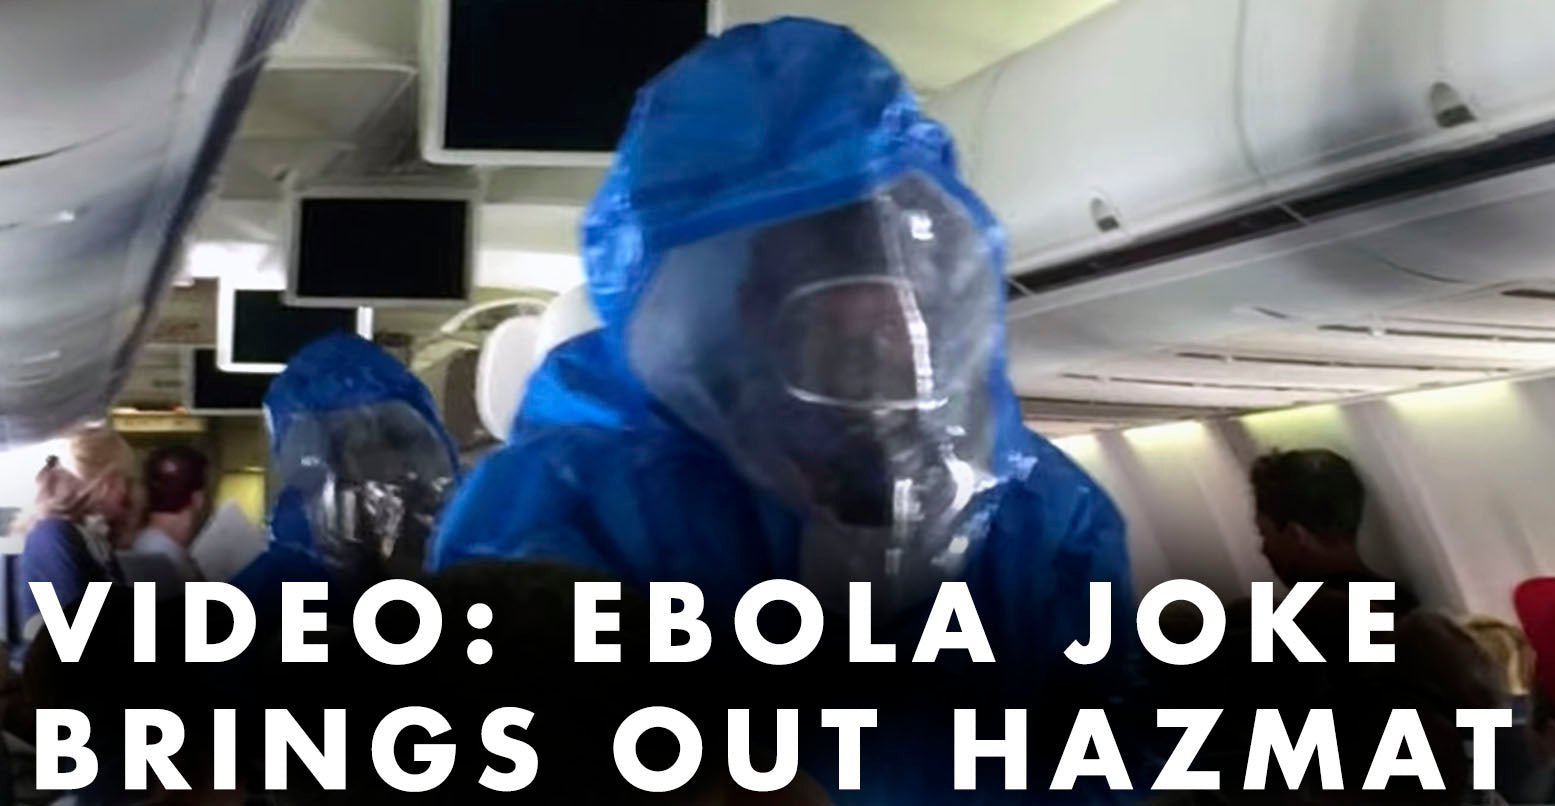 VIDEO: EBOLA JOKE BRINGS OUT HAZMAT ON AIRPLANE